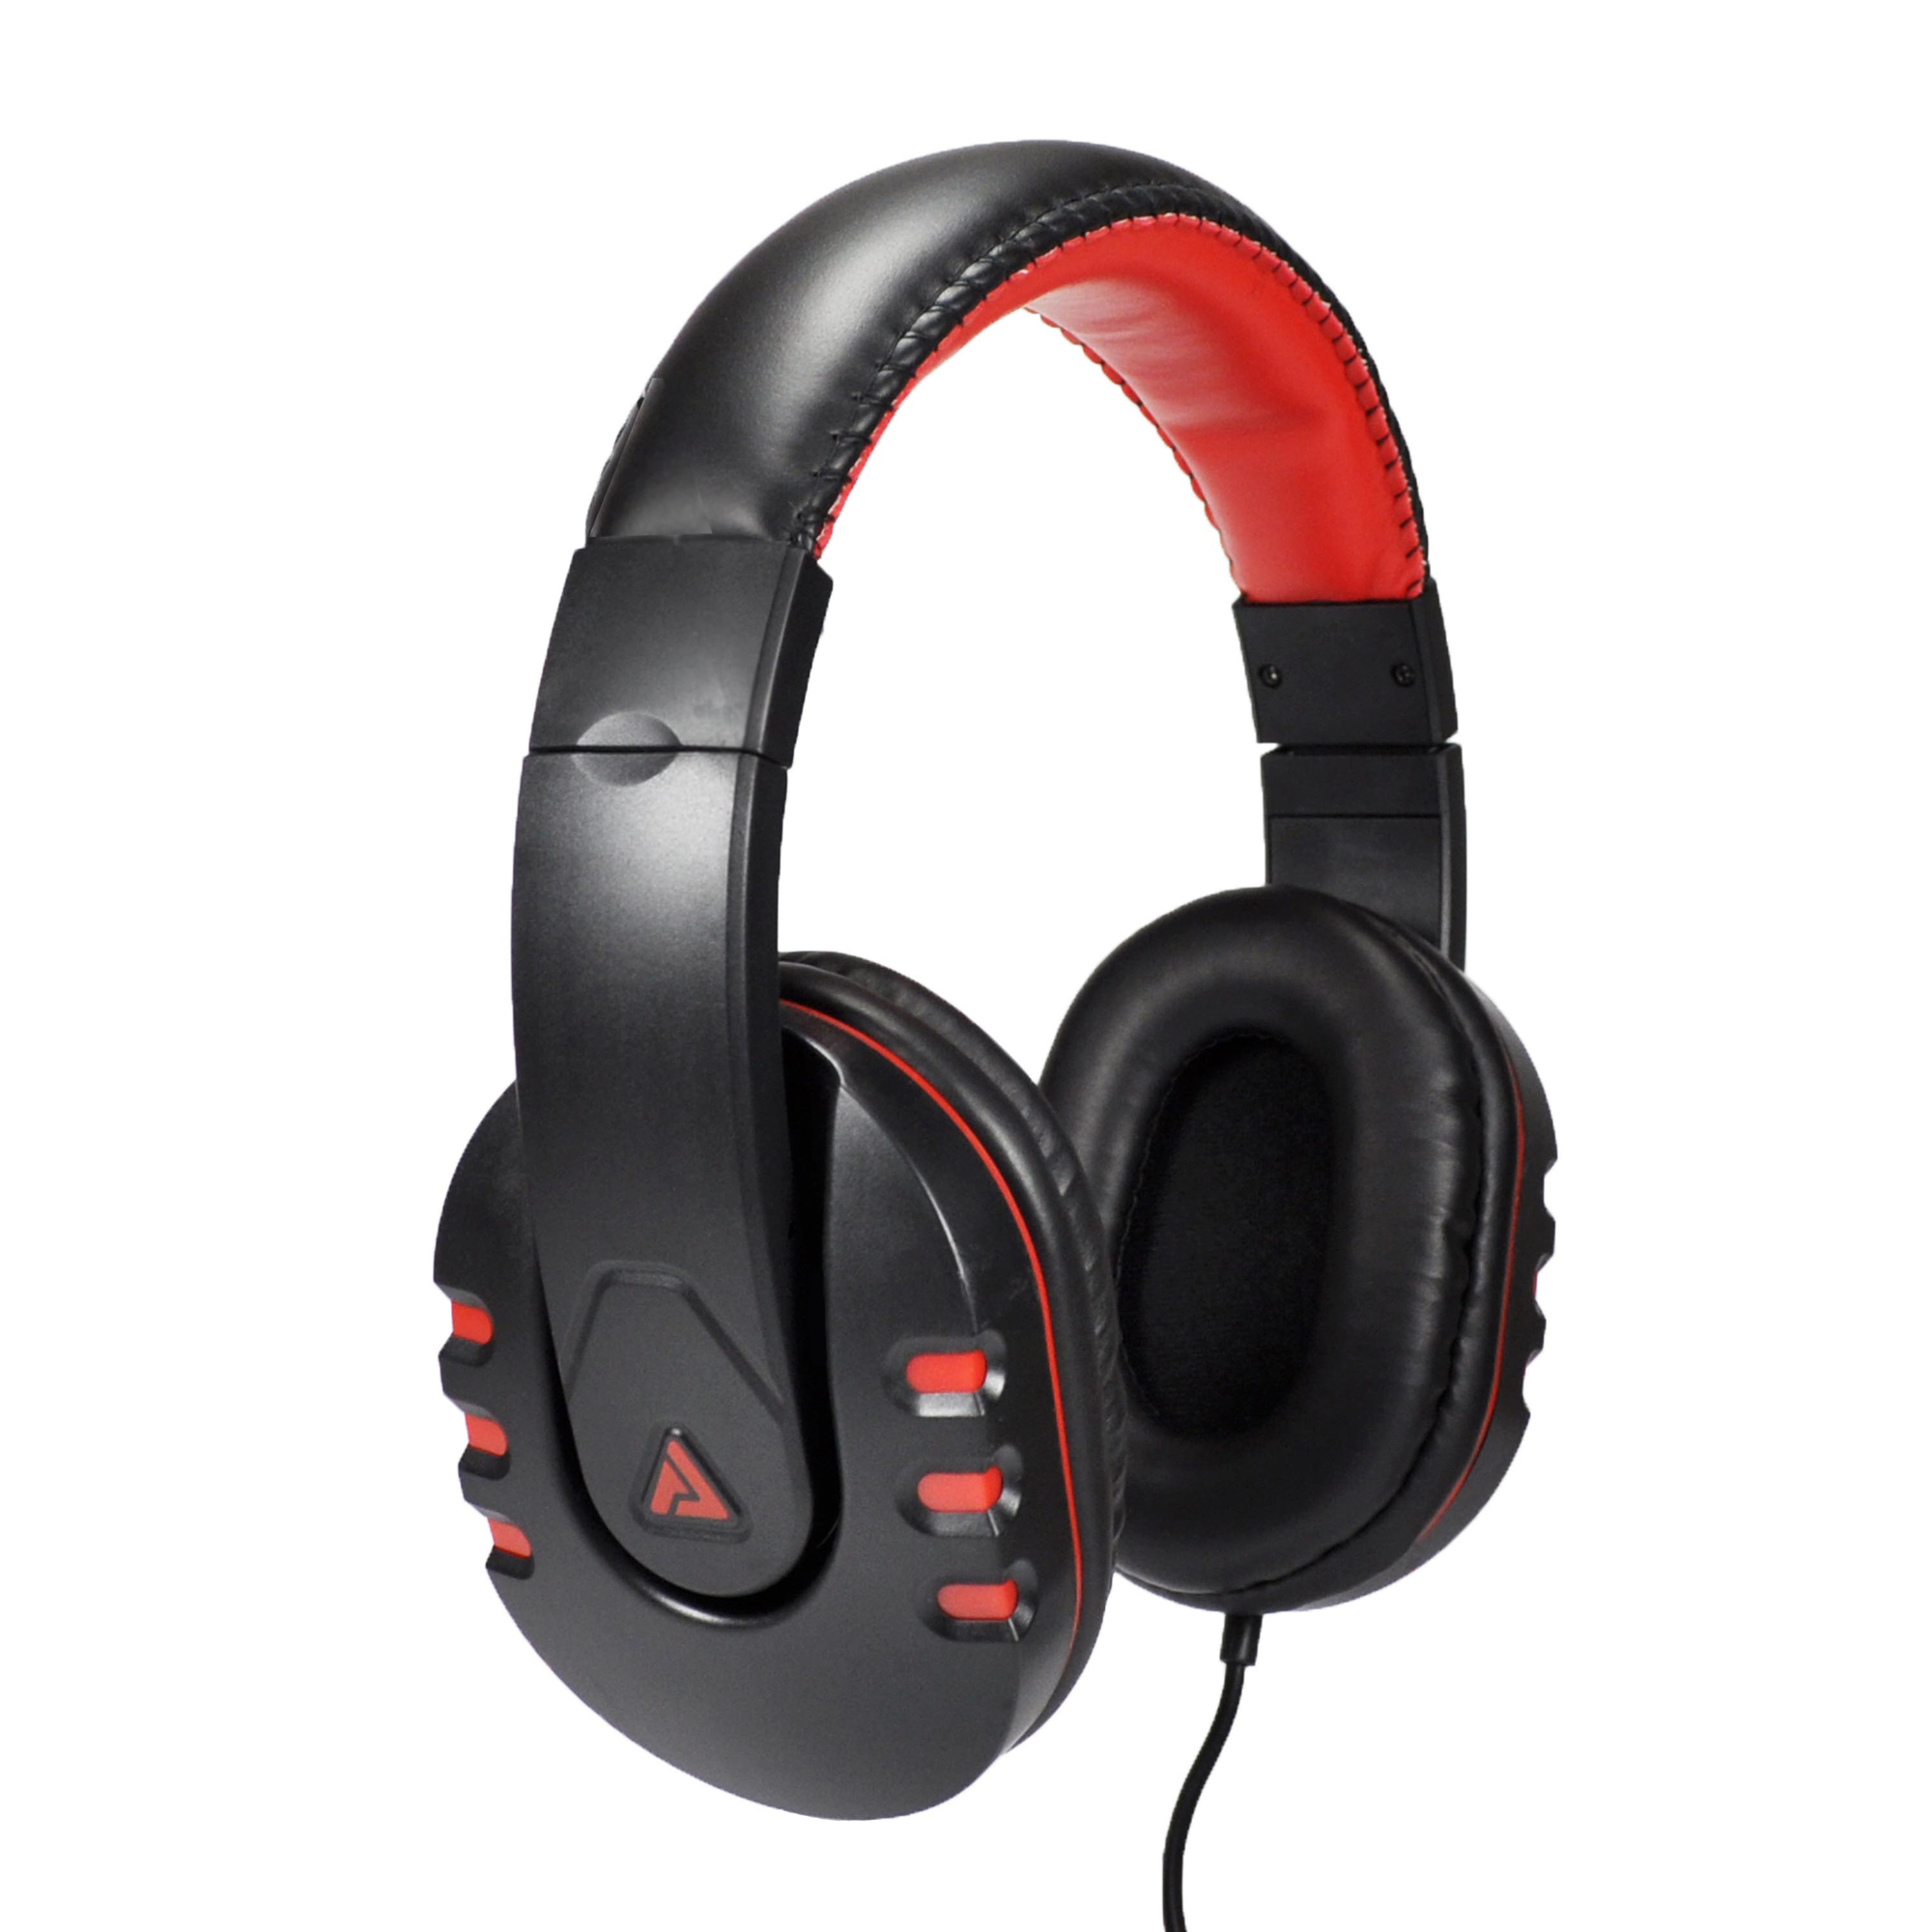 Audio Council Onyx Premium DJ Style Over-Ear Adjustable Headphones